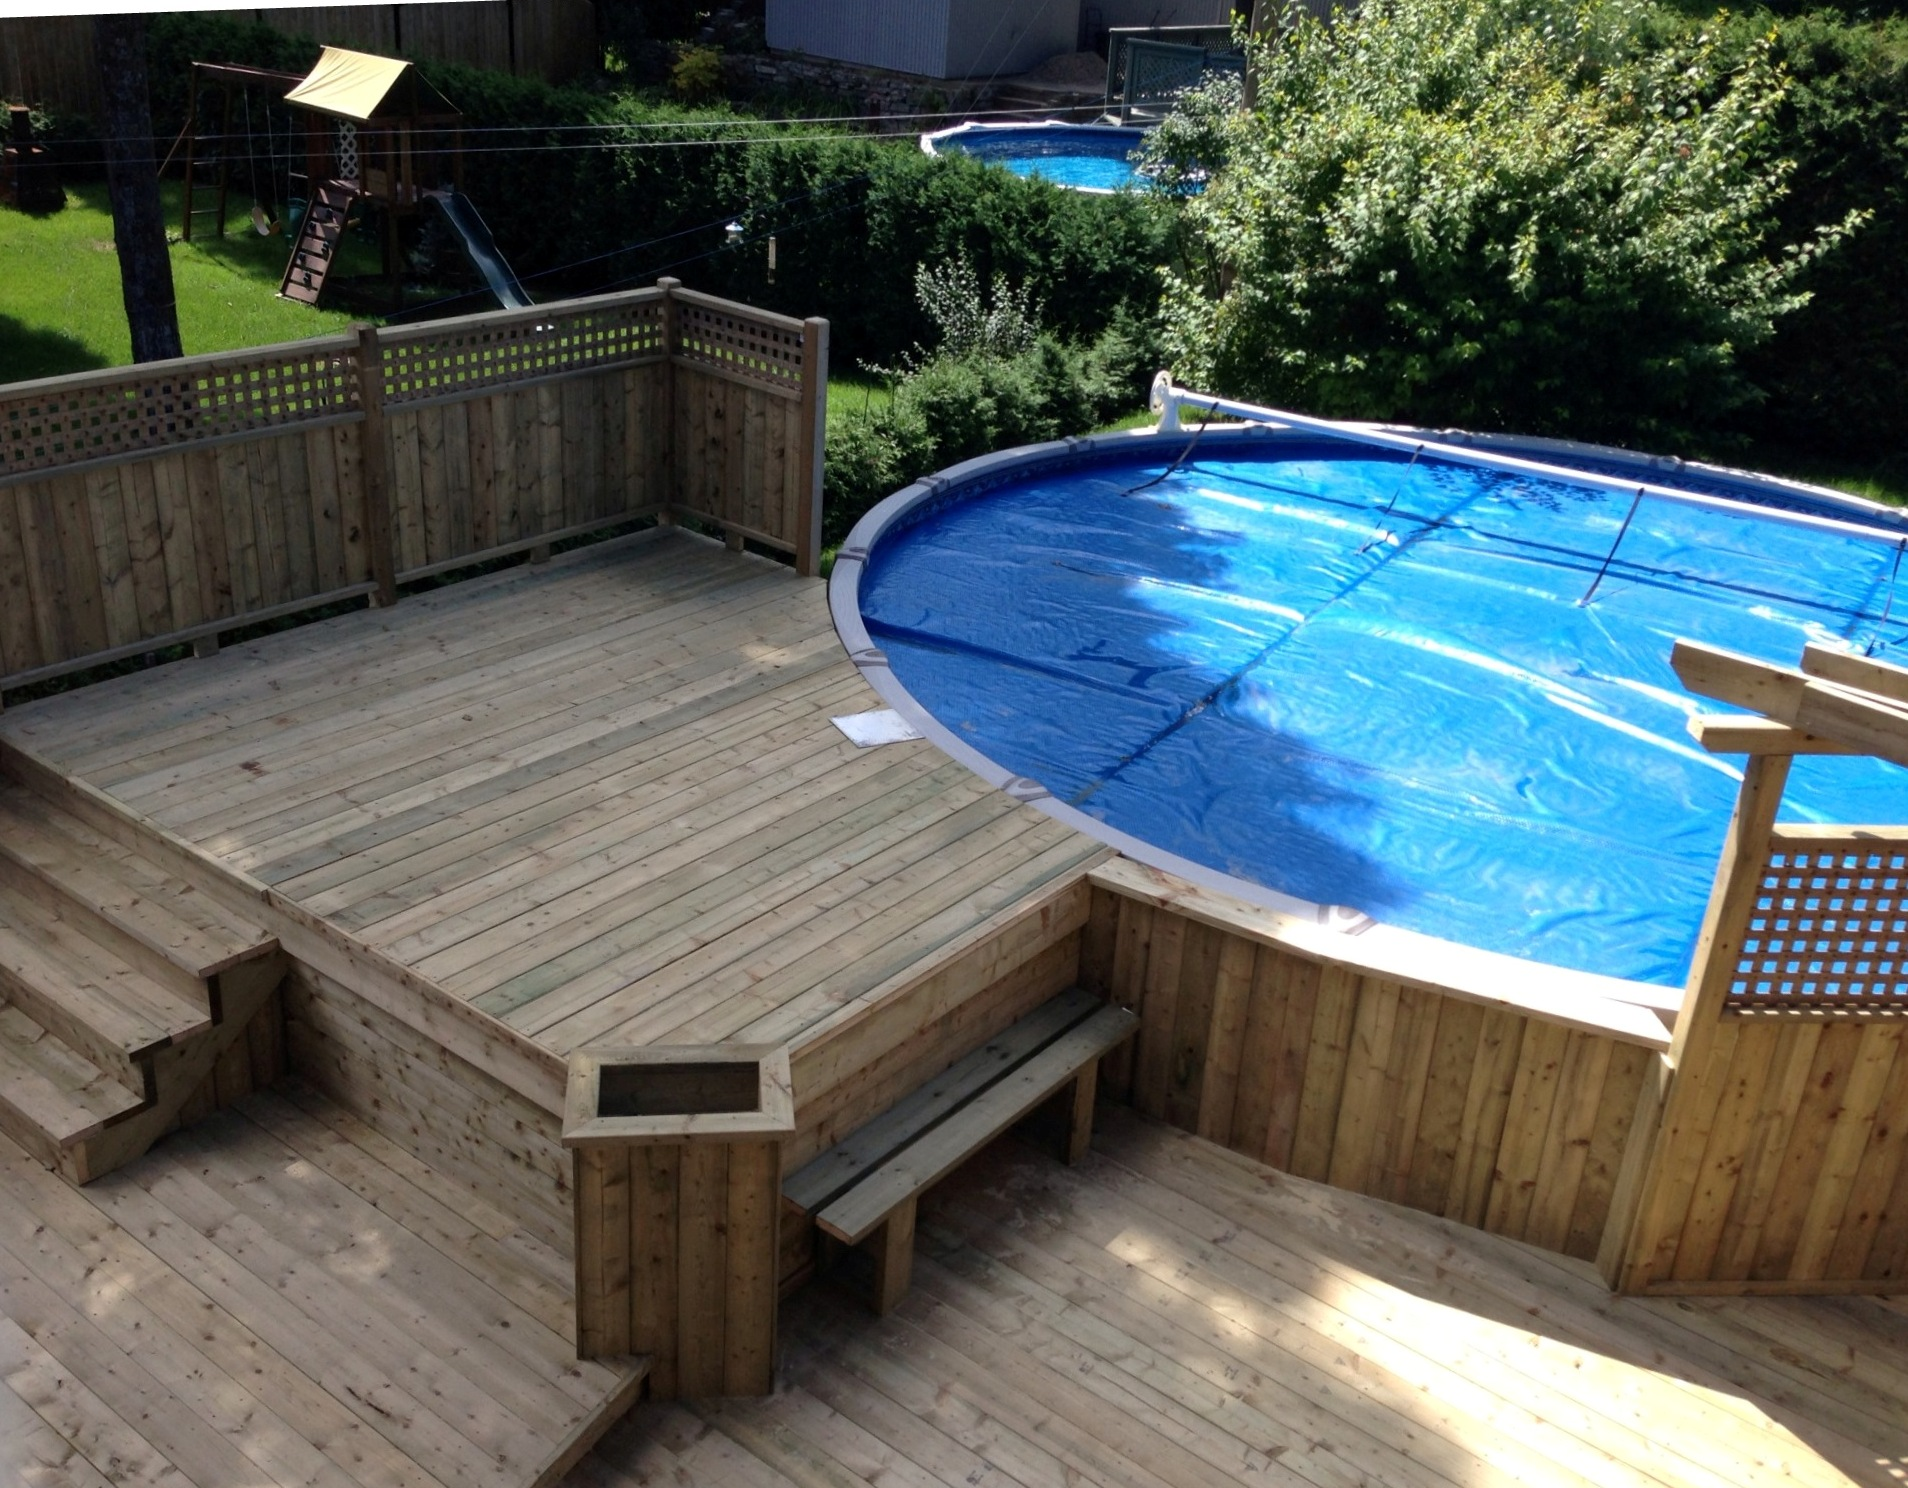 Patios decks piscine patio bois trait for Plan pour deck de piscine